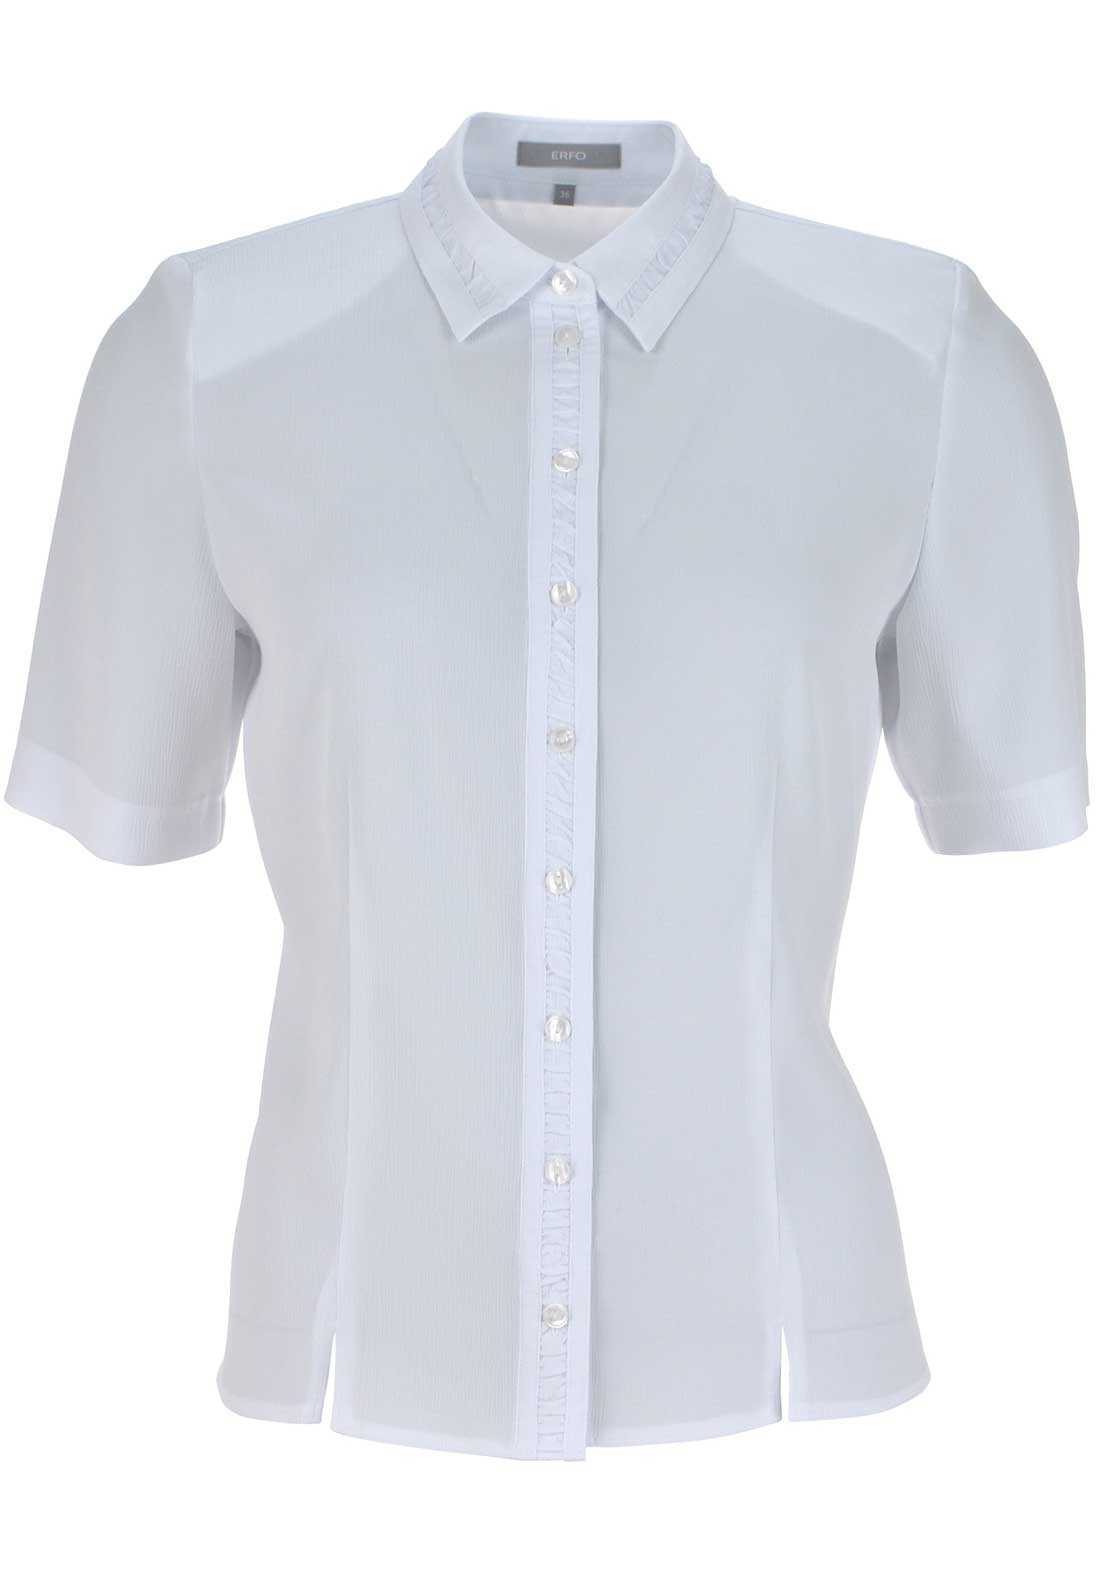 ERFO Textured Short Sleeve Blouse, White